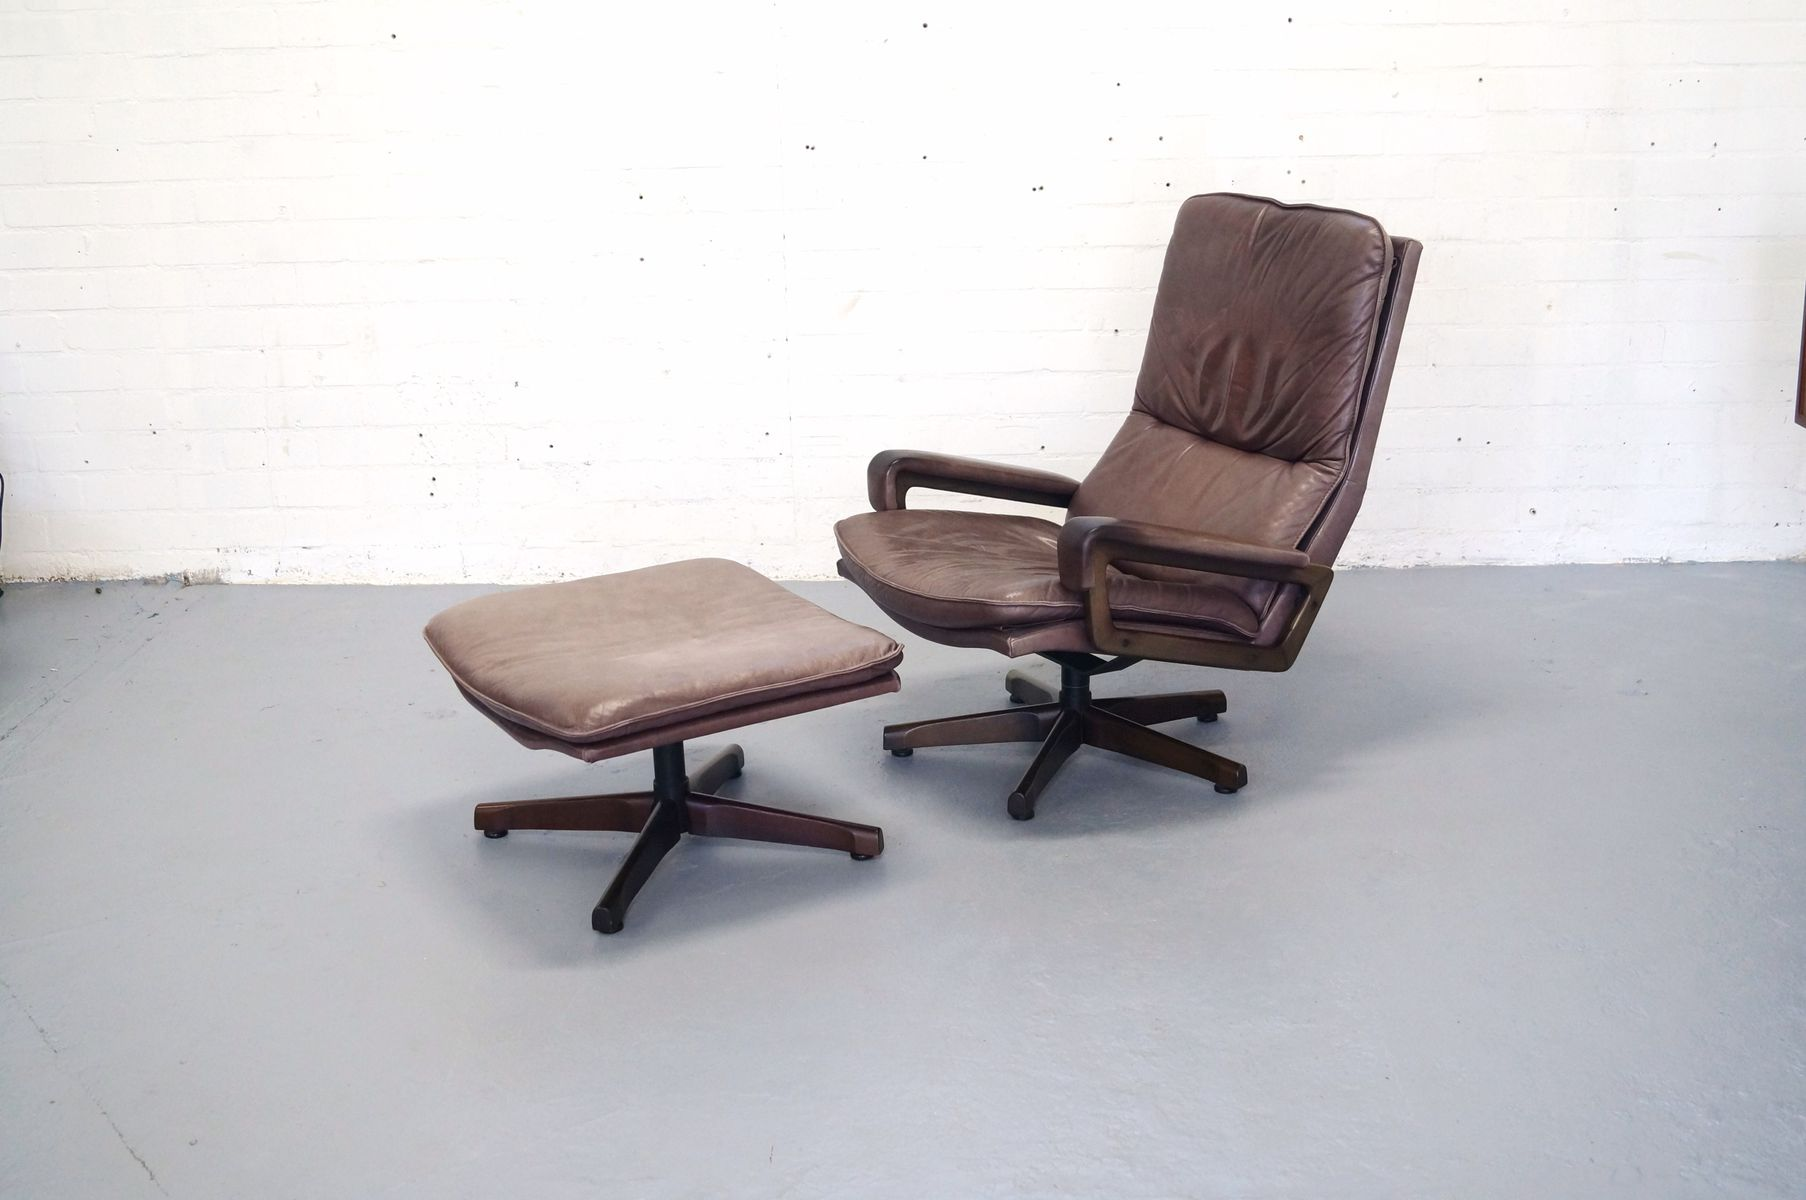 Vintage eames style chair - King Chair And Ottoman By Andre Vandenbeuck For Strassle